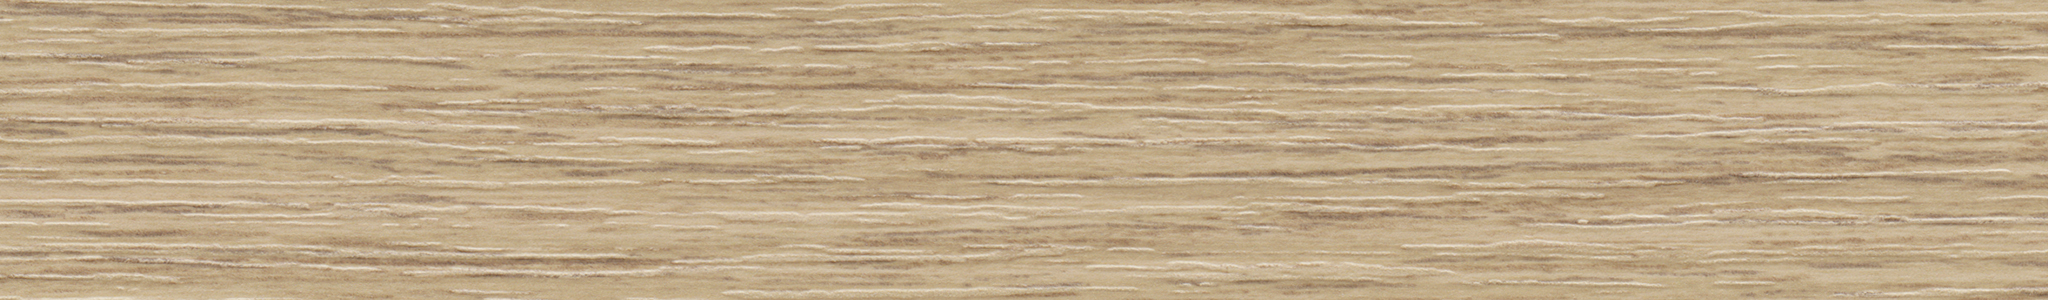 HD 240320 ABS Edge Oak Sereno Pore